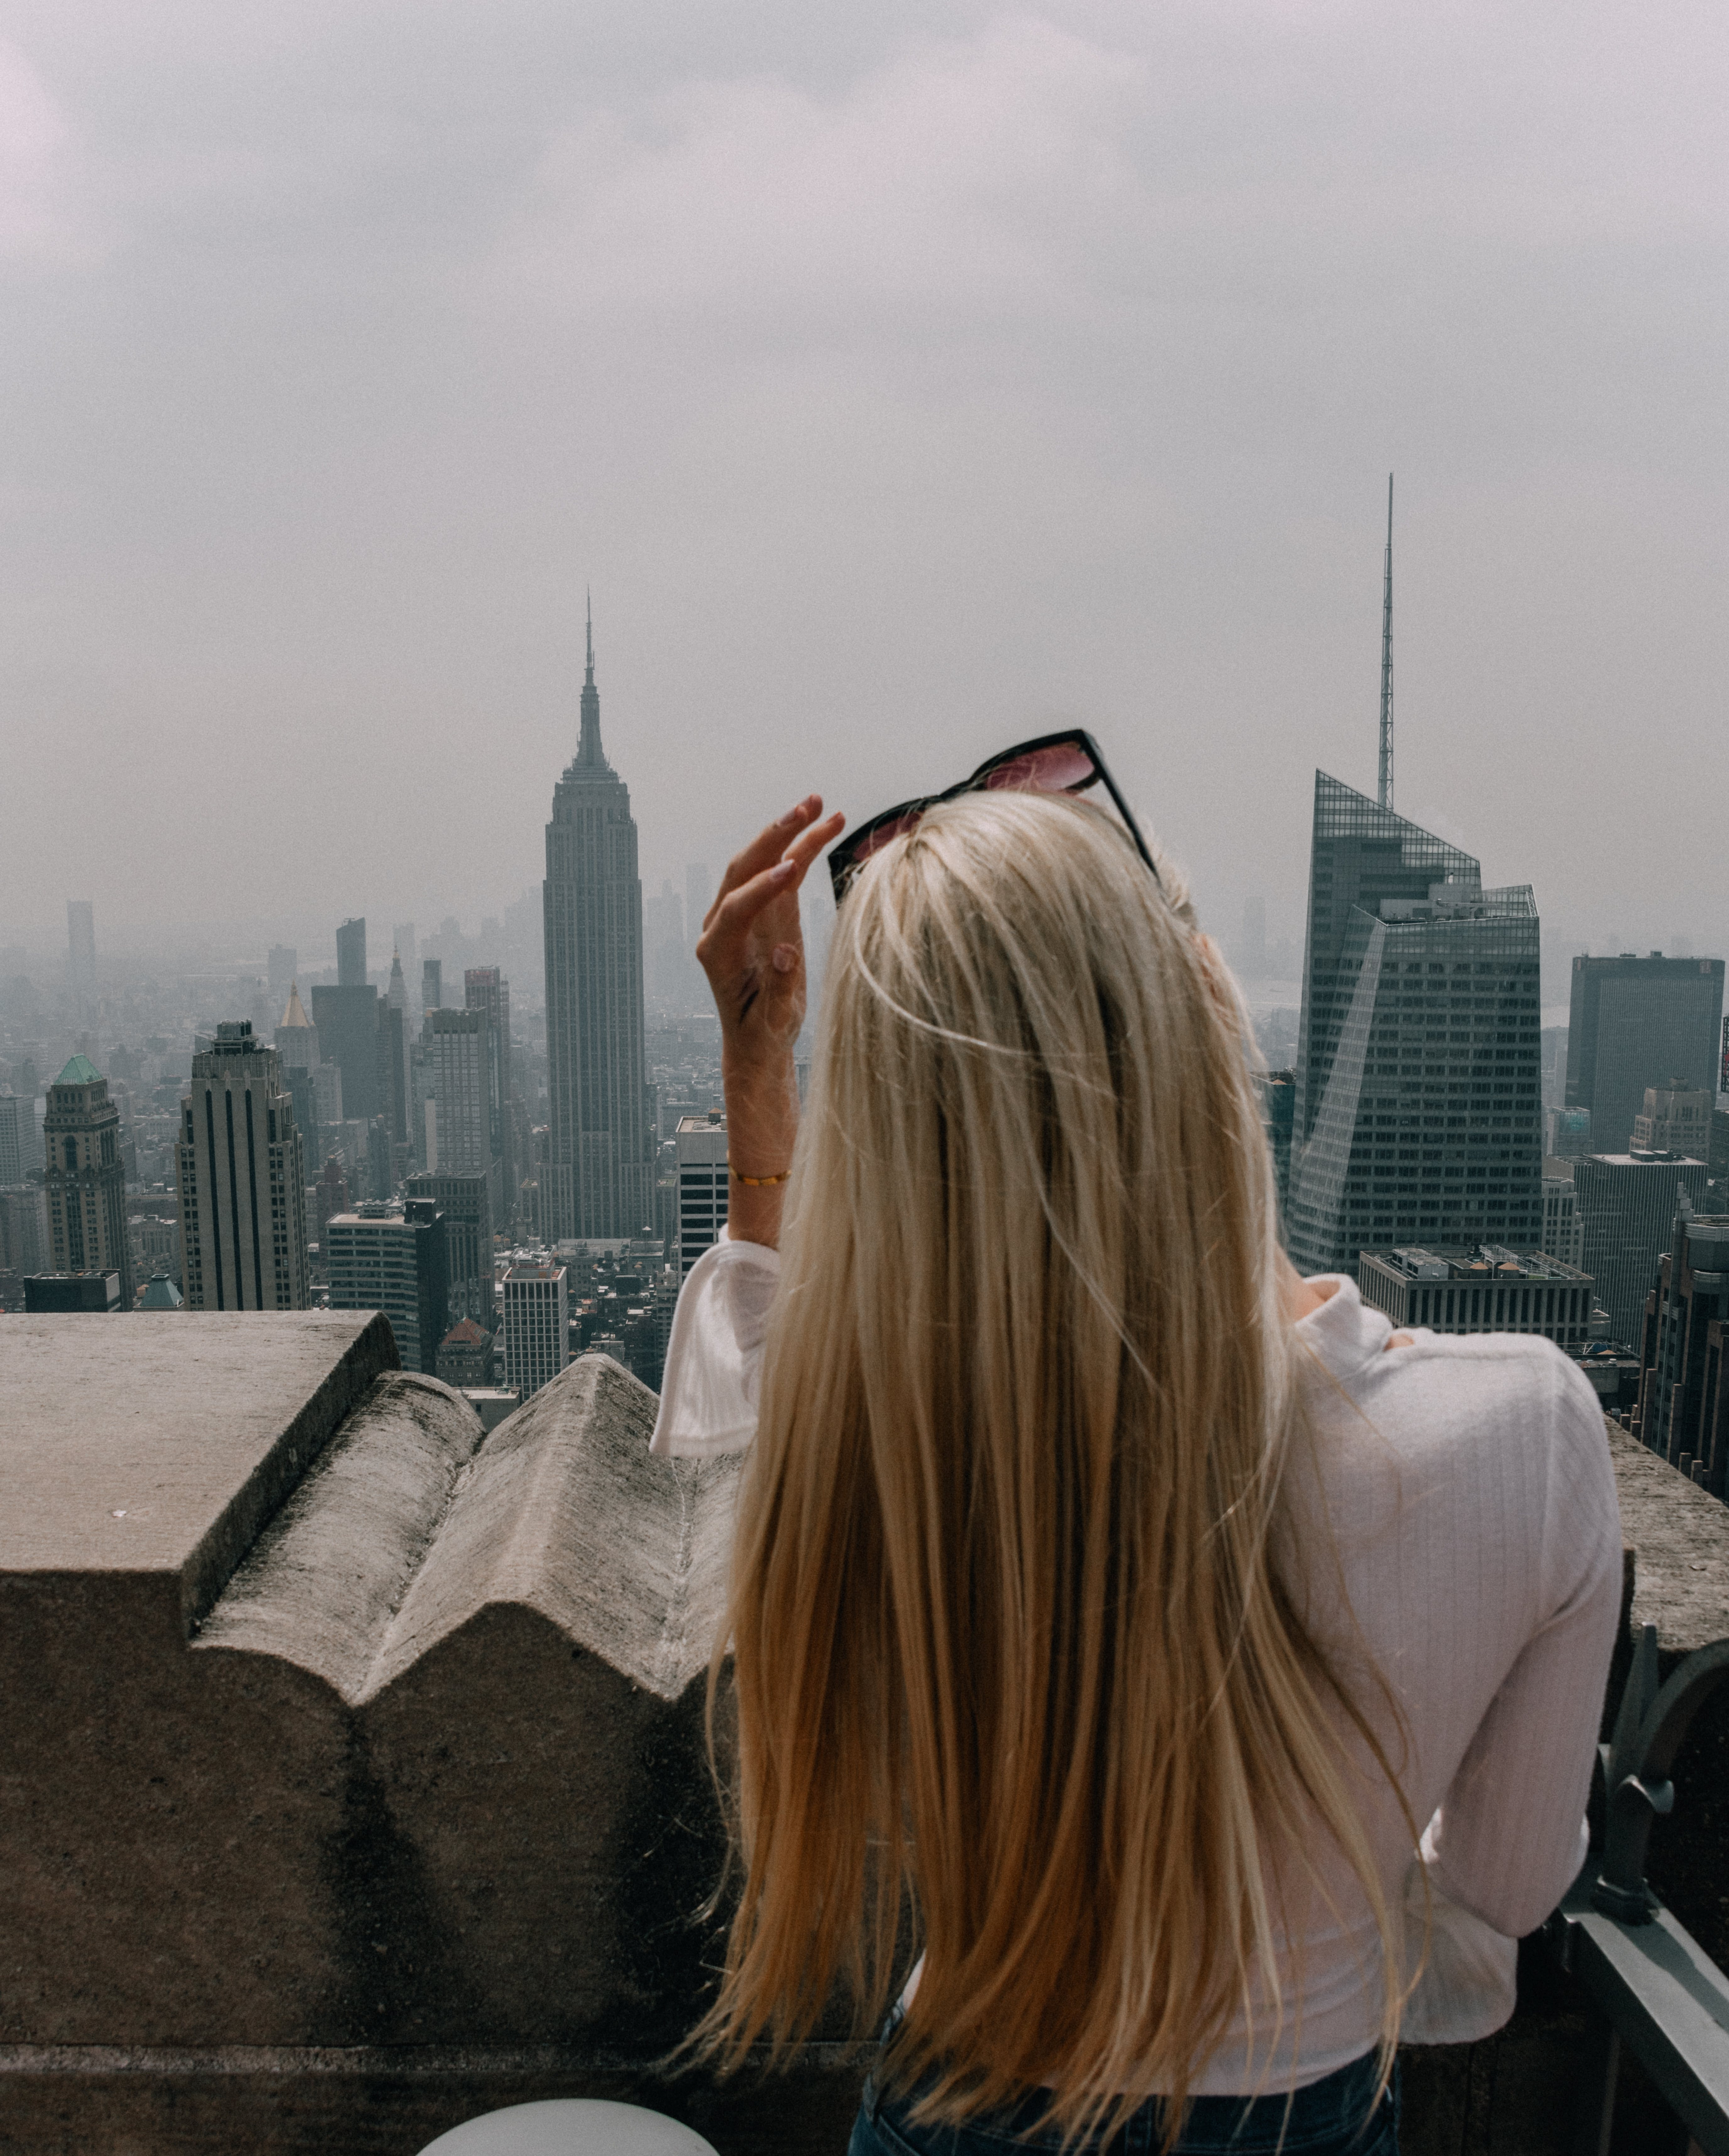 Woman Wearing White Shirt Standing Infront of City Building View